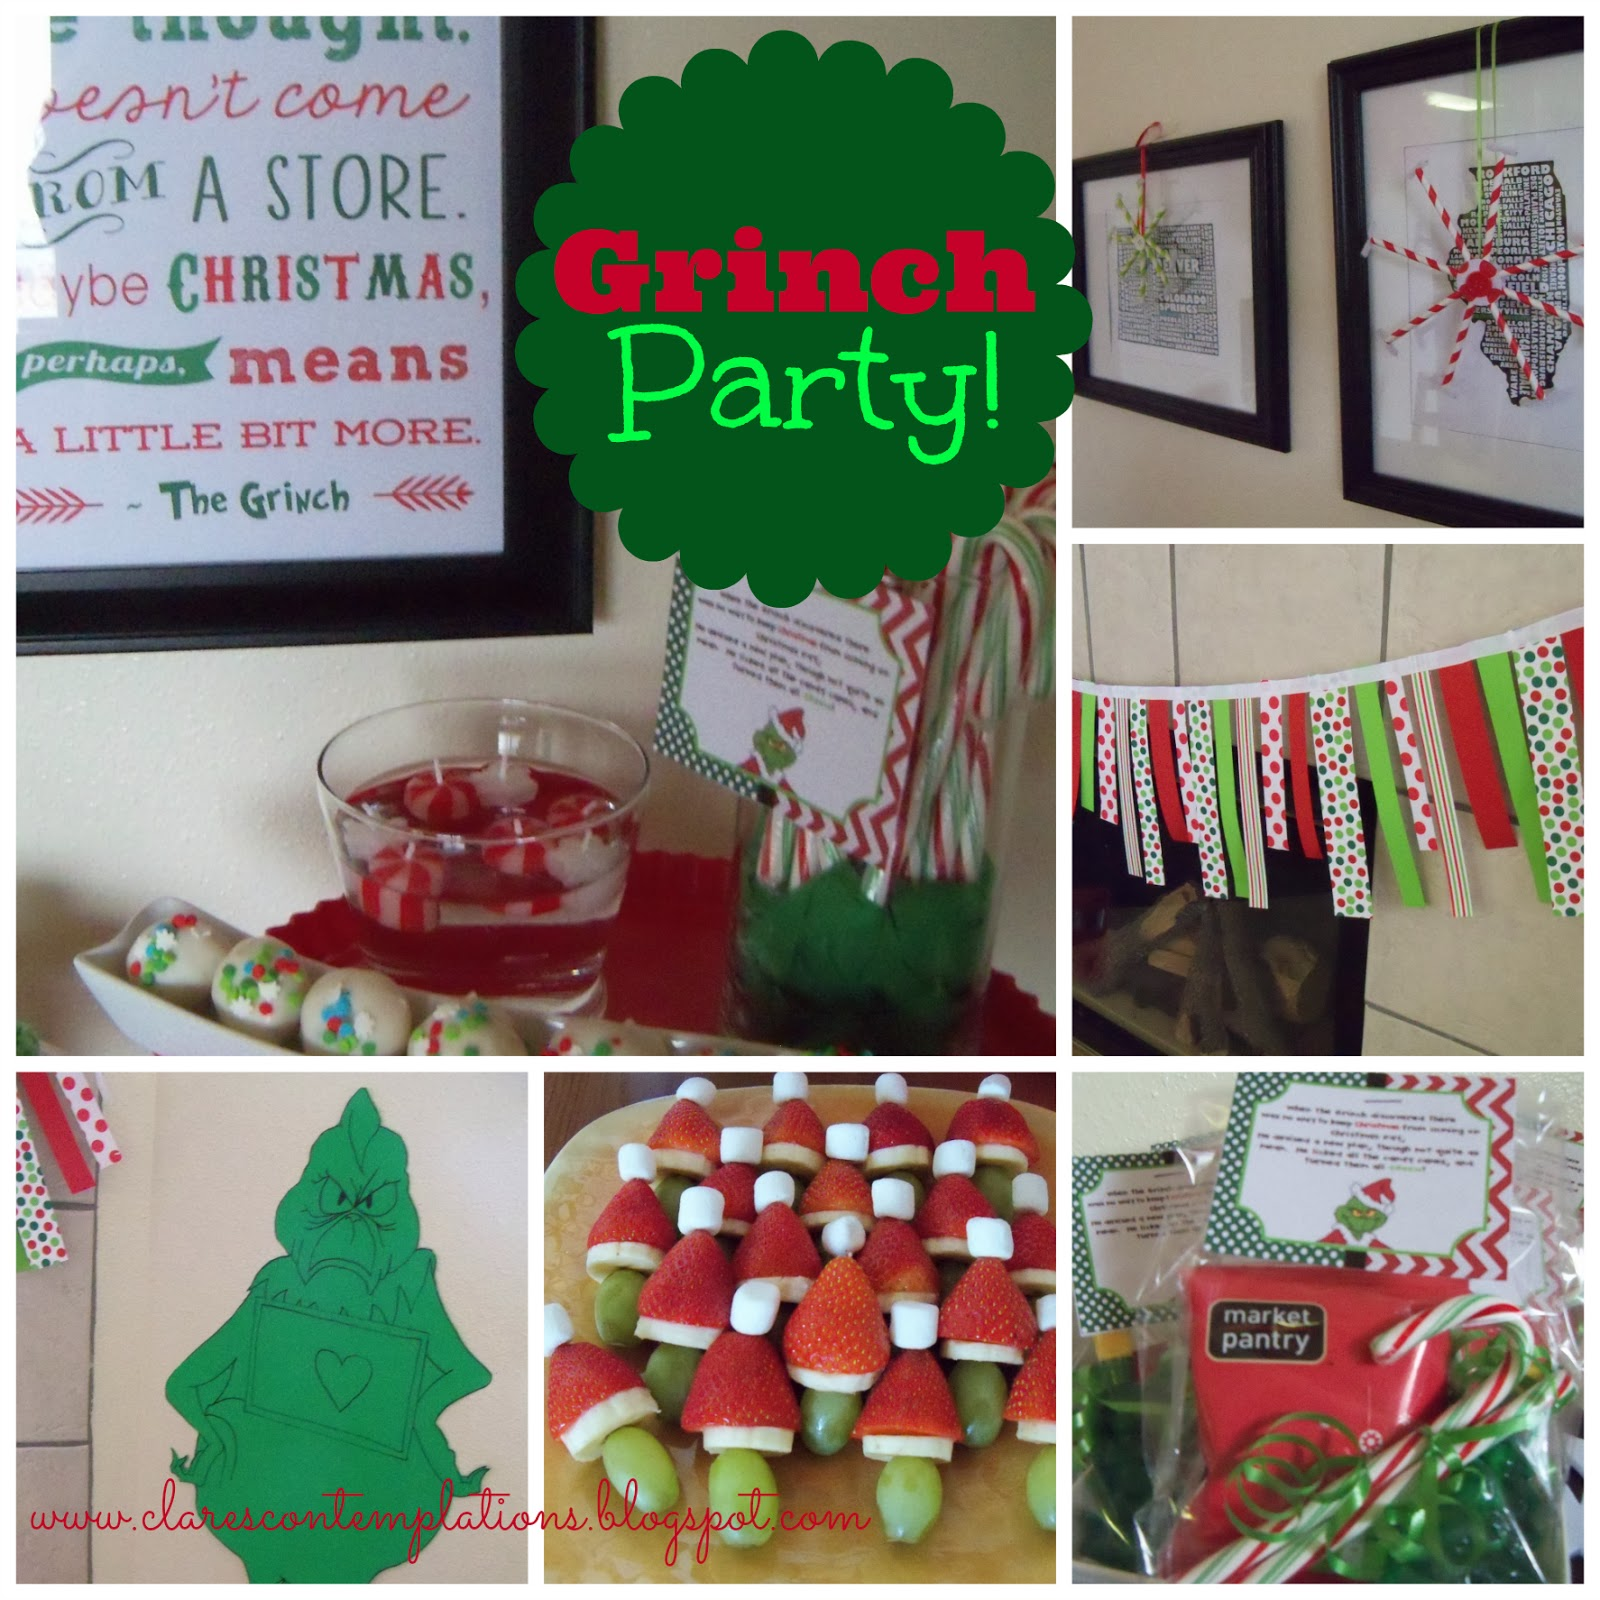 Clare's Contemplations: Great Grinch Party